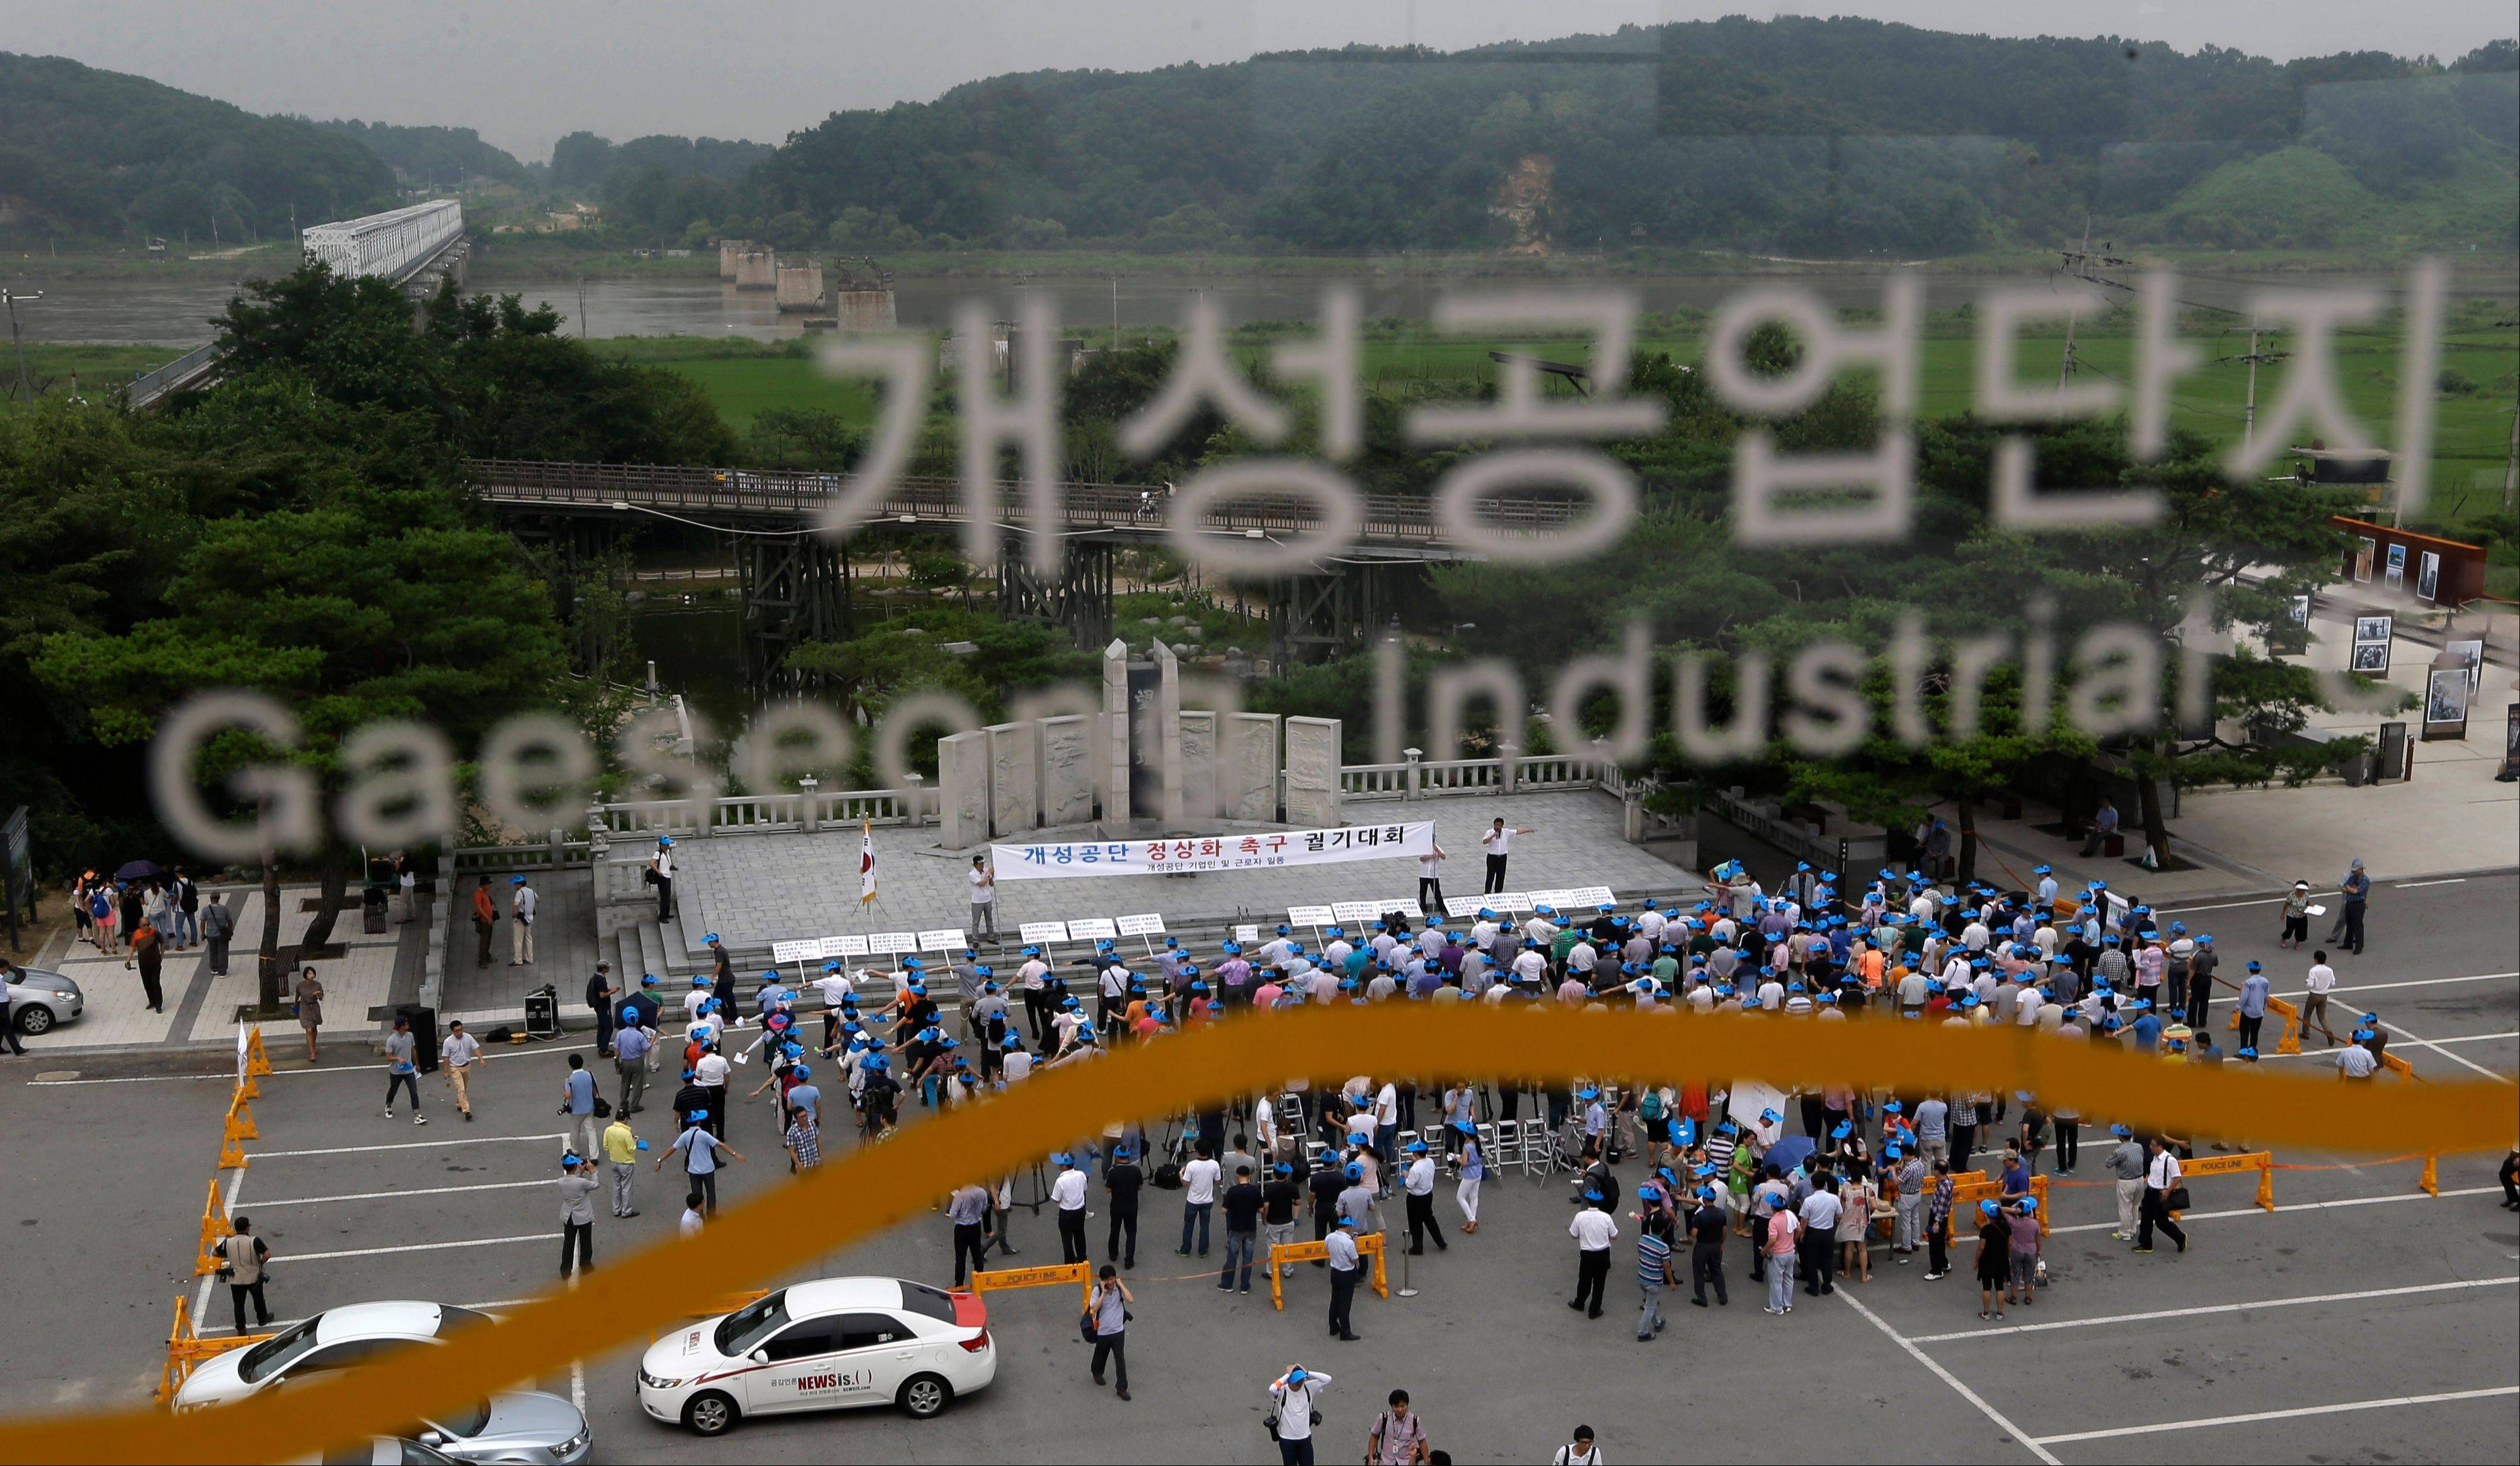 South Korean workers and owners who run factories in the stalled Kaesong industrial complex, the last symbol of inter-Korean cooperation, stage a rally insisting the normalize the operation of the industrial complex at the Imjingak Pavilion near the border village of Panmunjom, which has separated the two Koreas since the Korean War, in Paju, north of Seoul, South Korea, Wednesday, Aug. 7, 2013. About 500 owners and workers gathered near the border area for the rally.